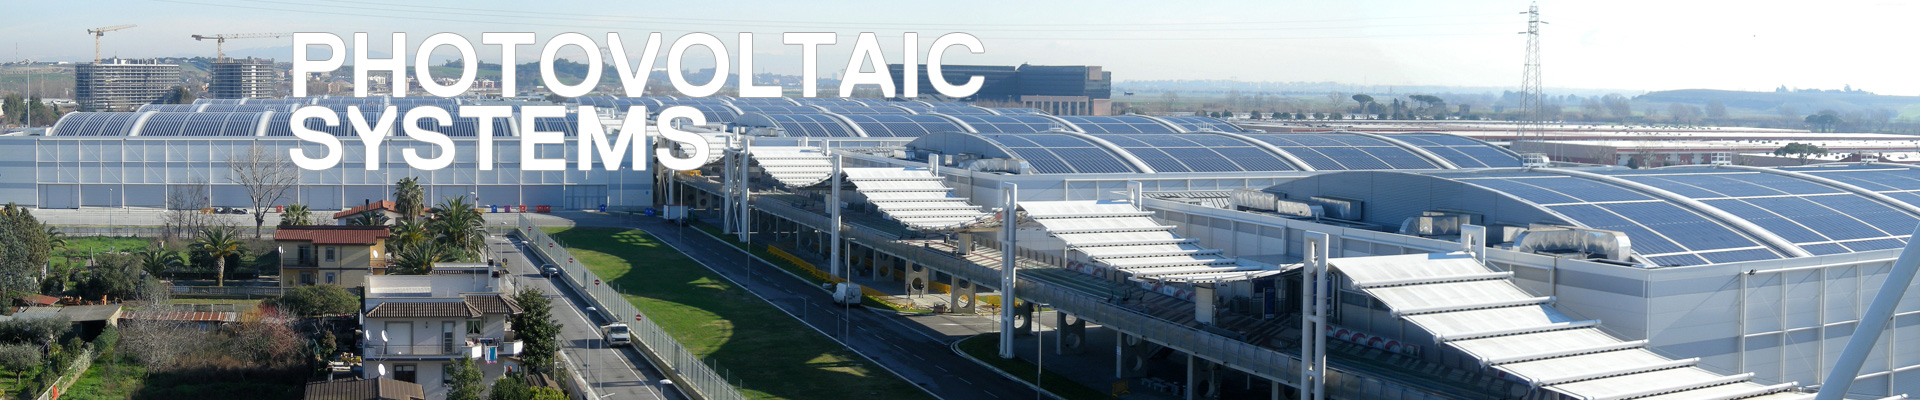 Standing Seam Metal Roofs Photovoltaic Systems